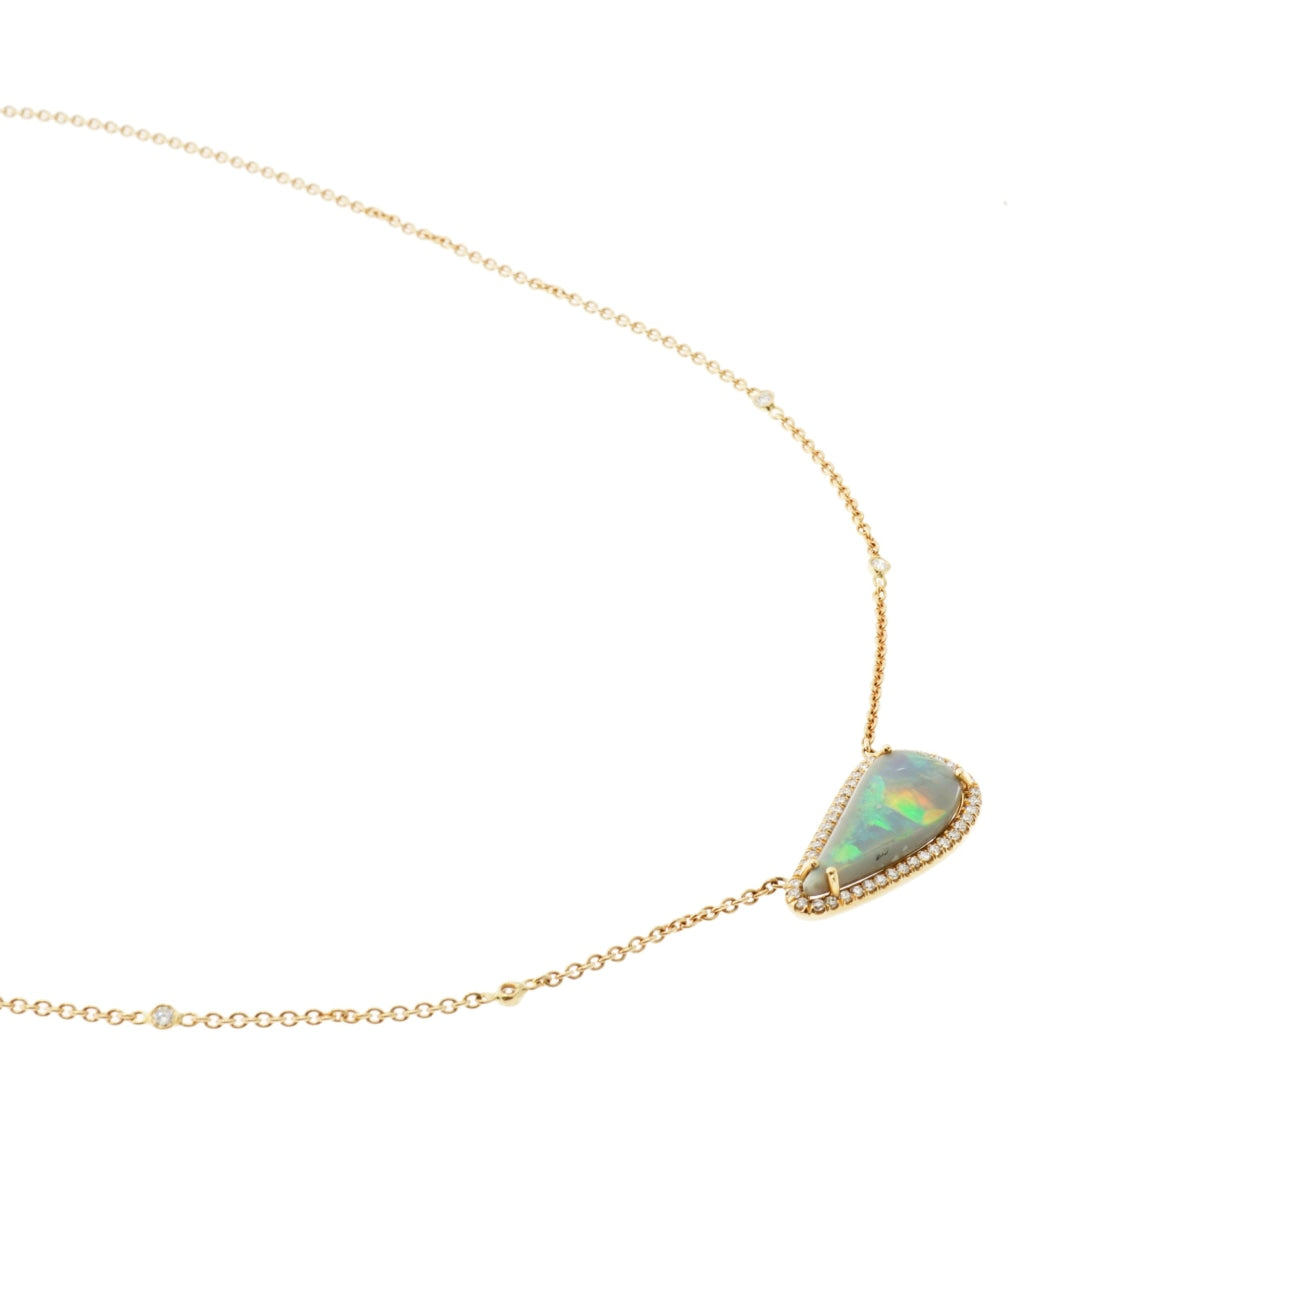 Lauren K Jewelry - Paisley Opal & Diamond Rose Gold Pendant | Manfredi Jewels